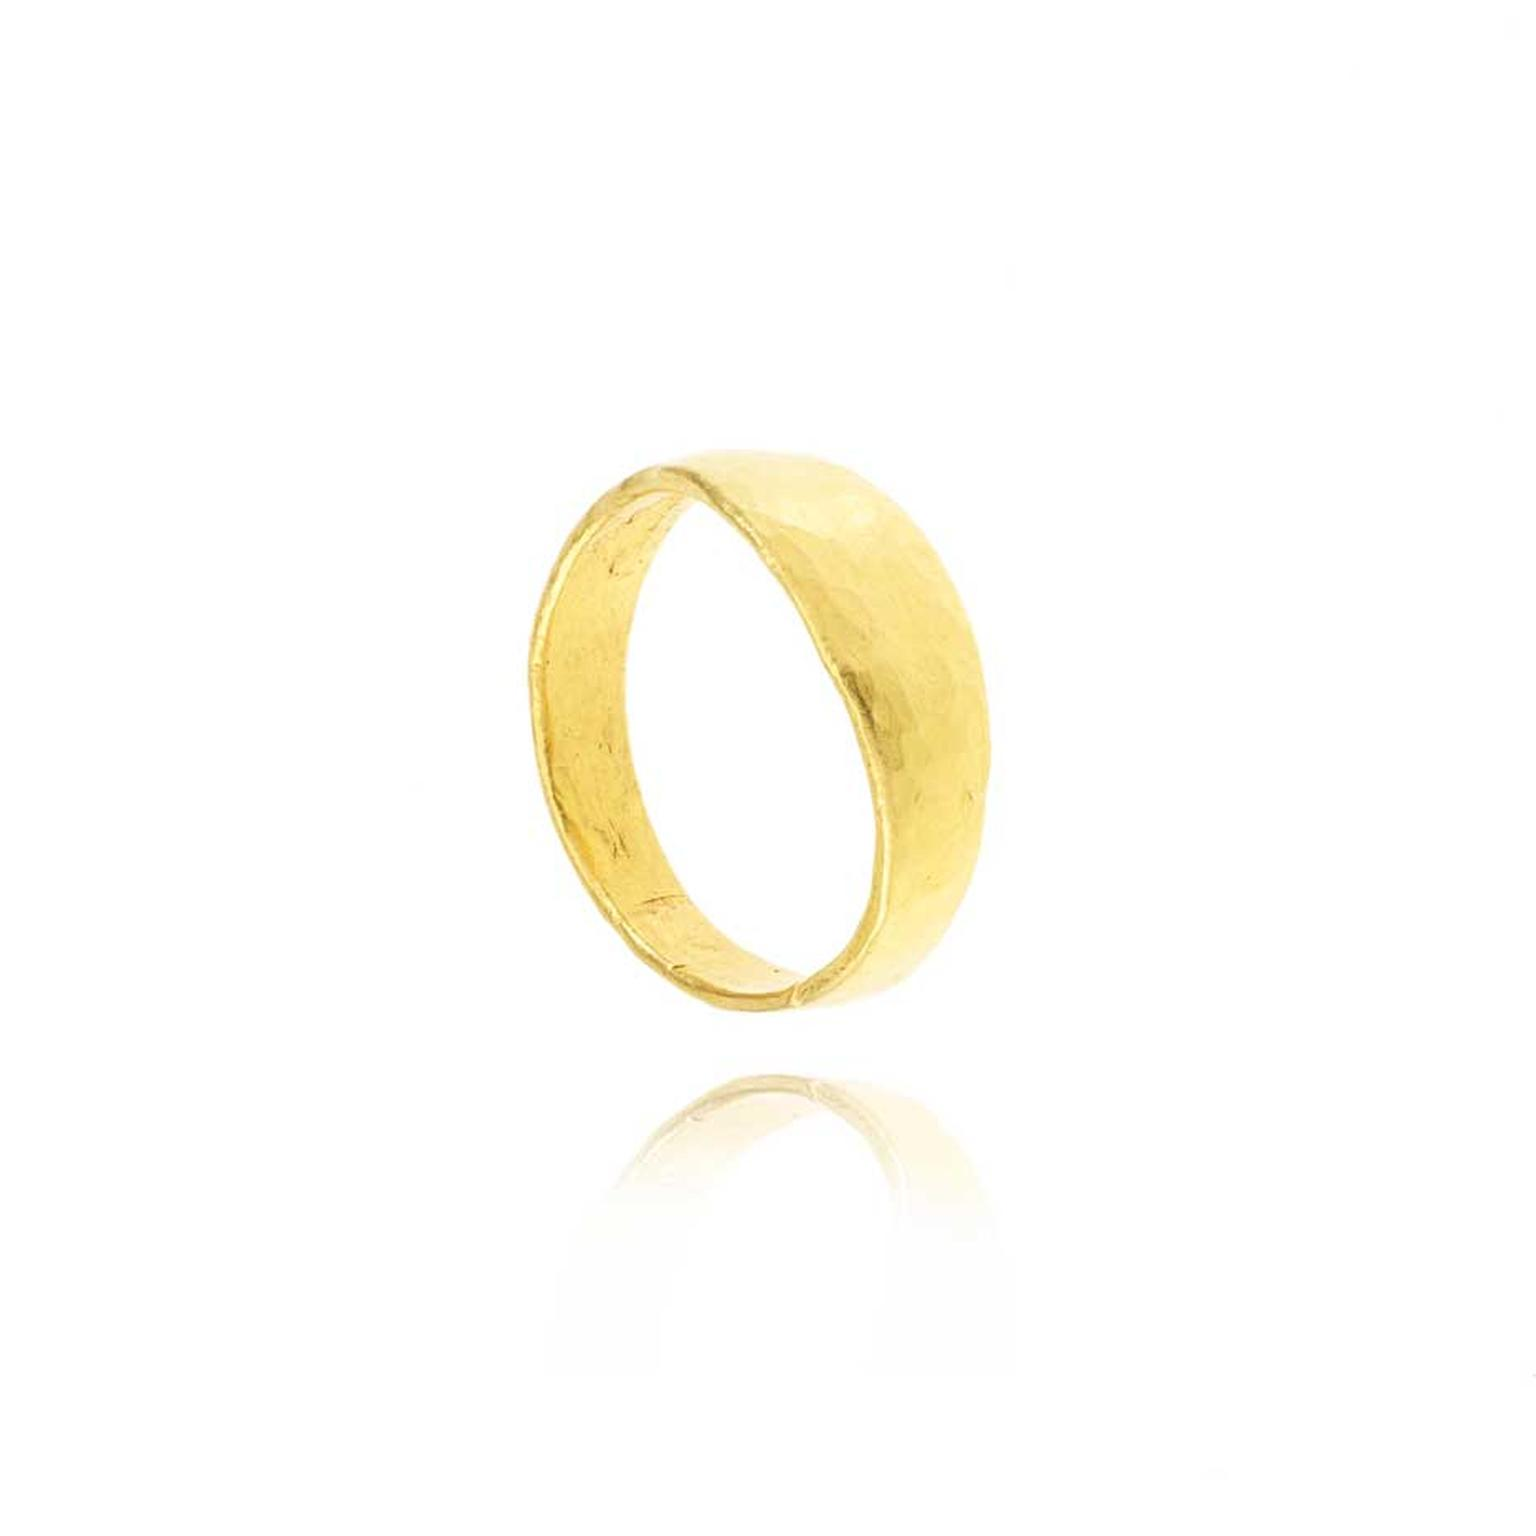 Pippa Small's ethical wedding bands are made using Fairtrade gold sourced from mines in Bolivia and Peru.